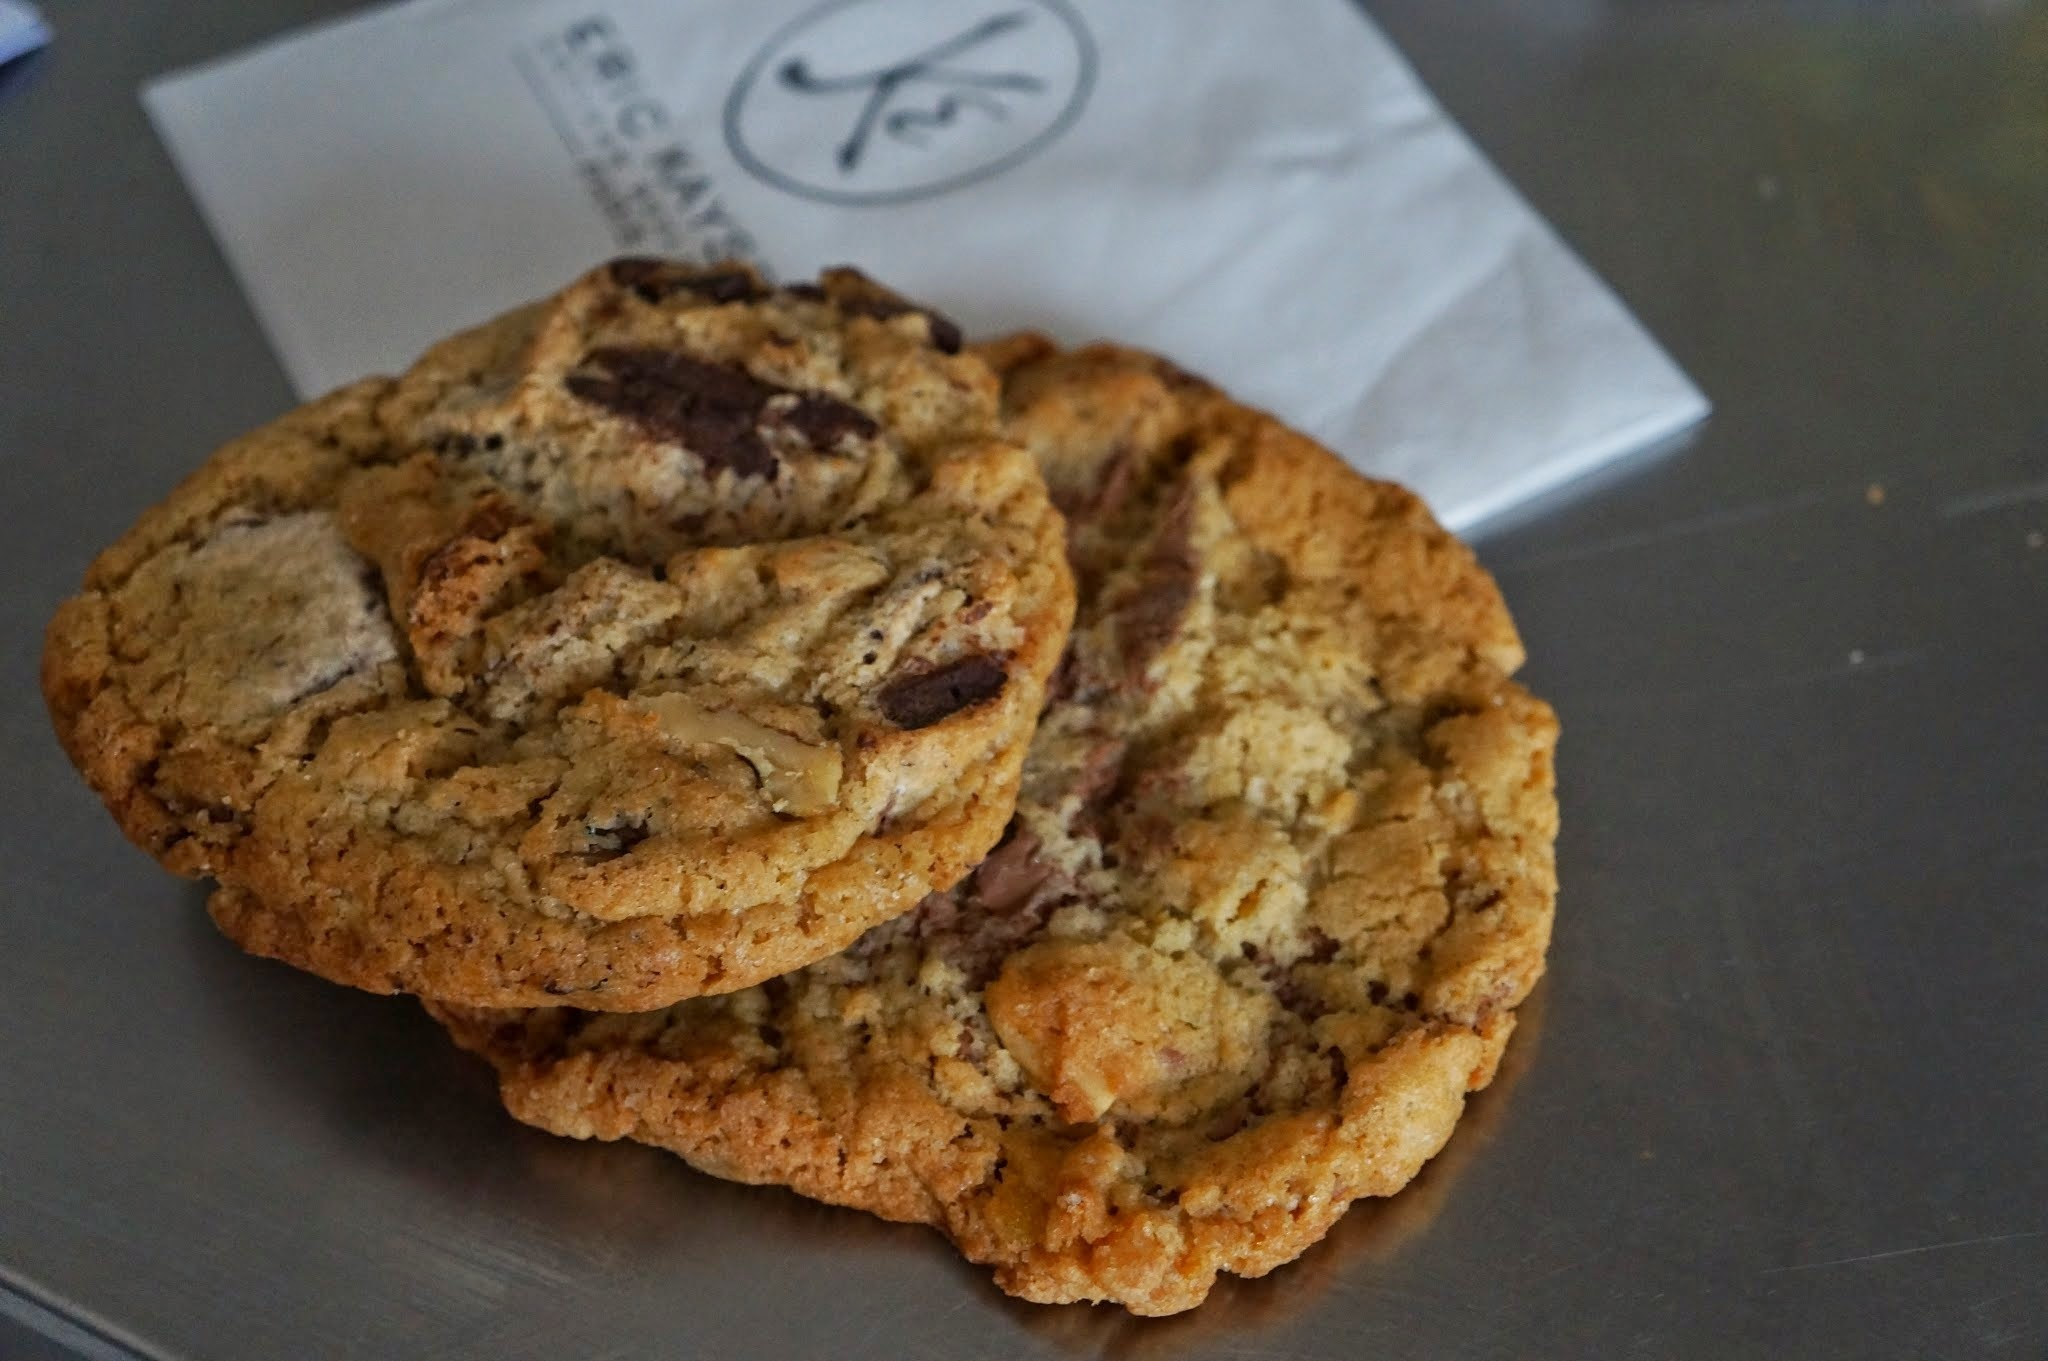 Concours : gagner des Cookies Eric Kayser !